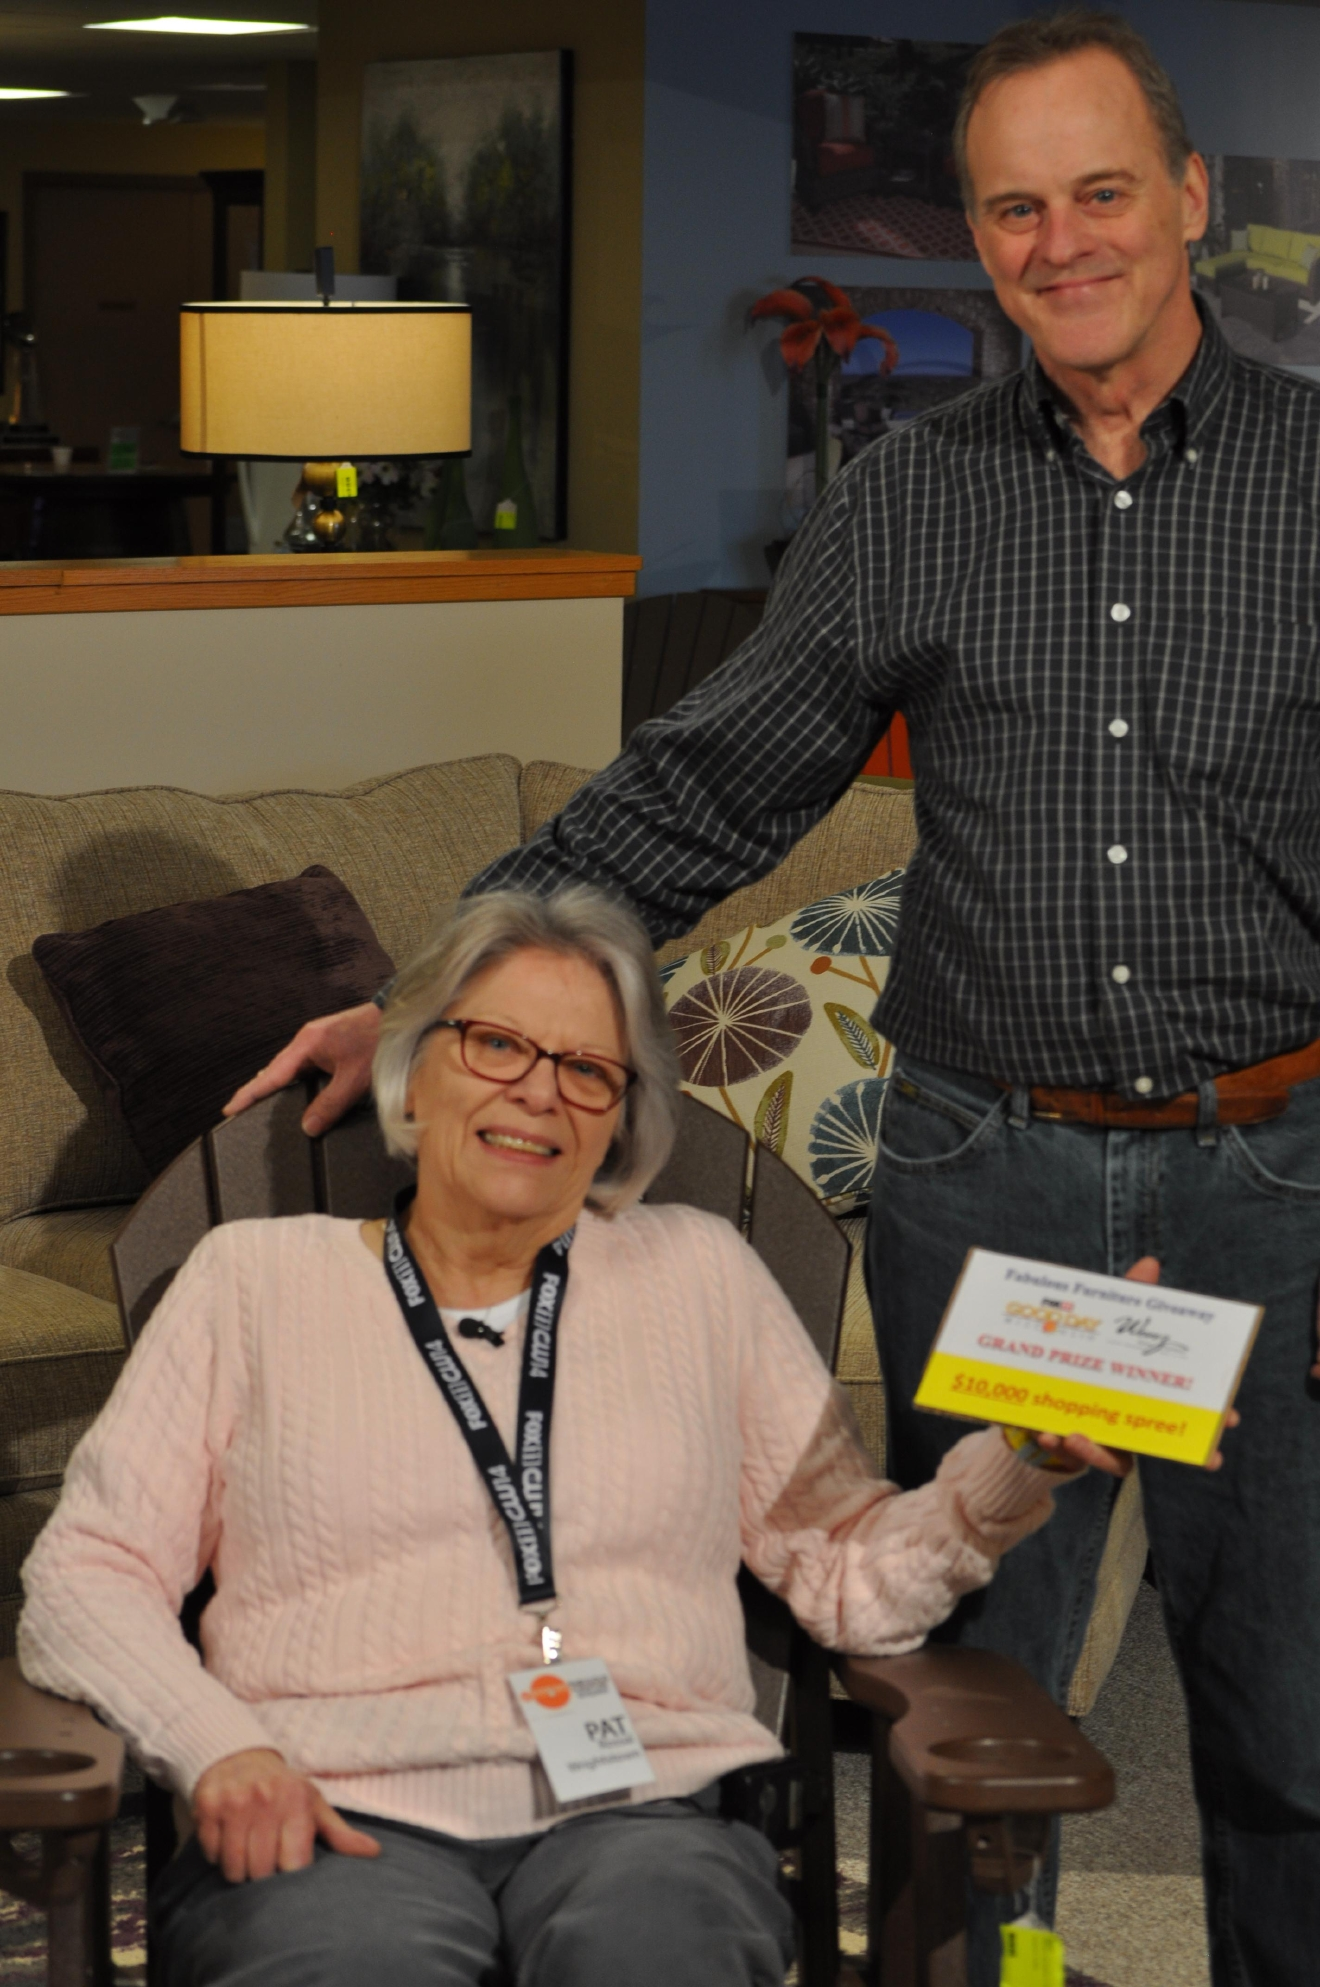 Fabulous Furniture Giveaway Winner Pat Rossal Poses For A Photo, March 2,  2016,